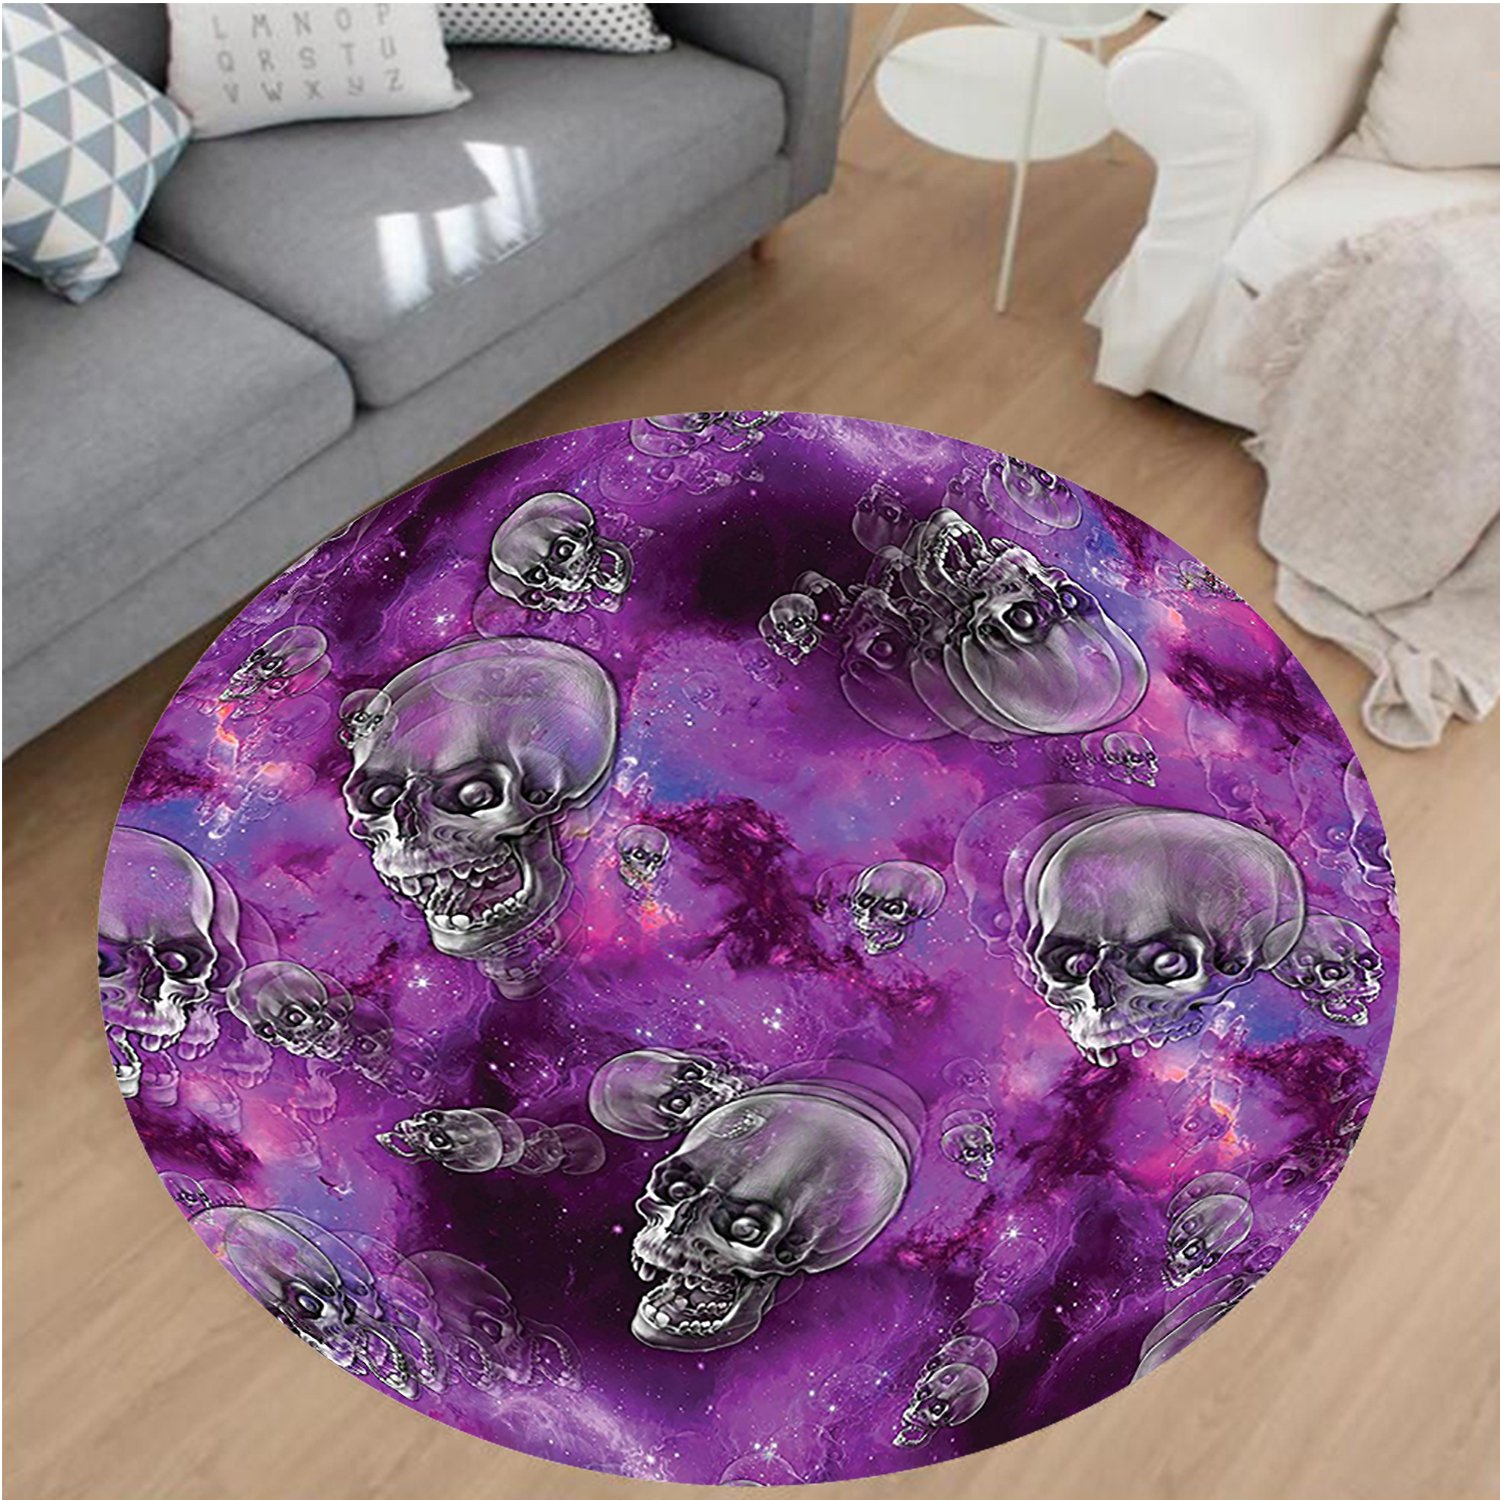 Nalahome Modern Flannel Microfiber Non-Slip Machine Washable Round Area Rug-or Horror Movie Themed Flying Skull Heads Halloween in Outer Space Image Black and Purple area rugs Home Decor-Round 75''